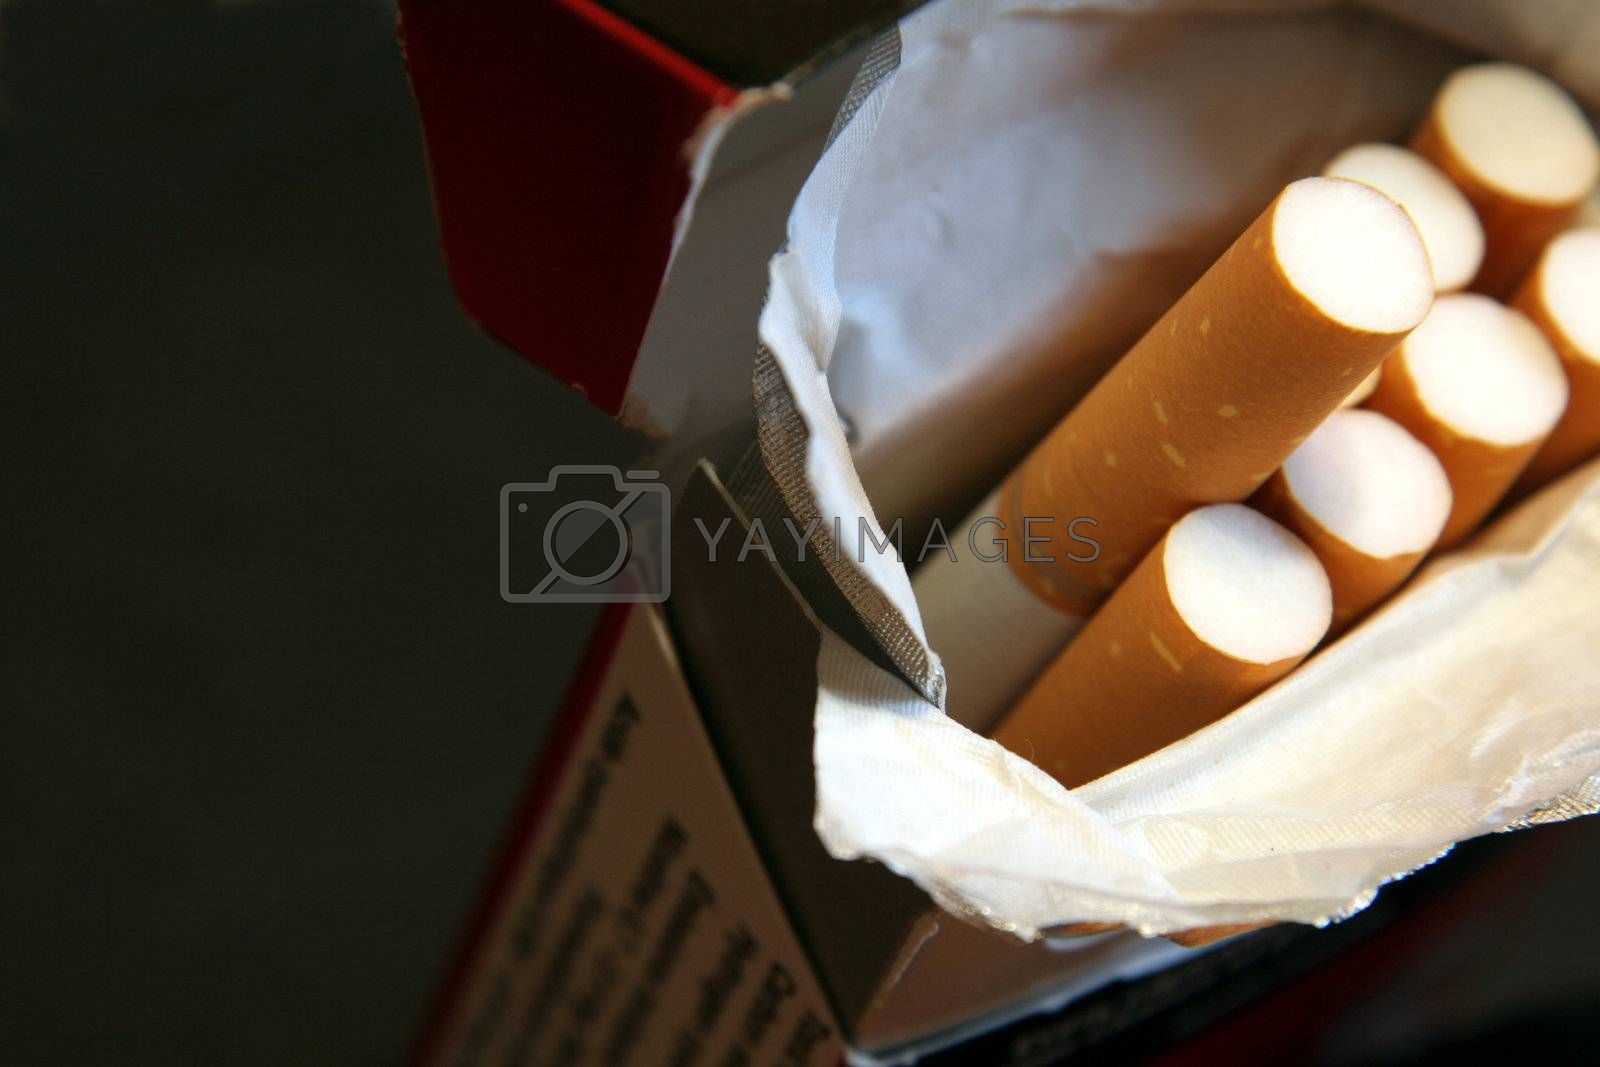 A macro shot of pack of cigarettes, shot with a very shallow depth of field.